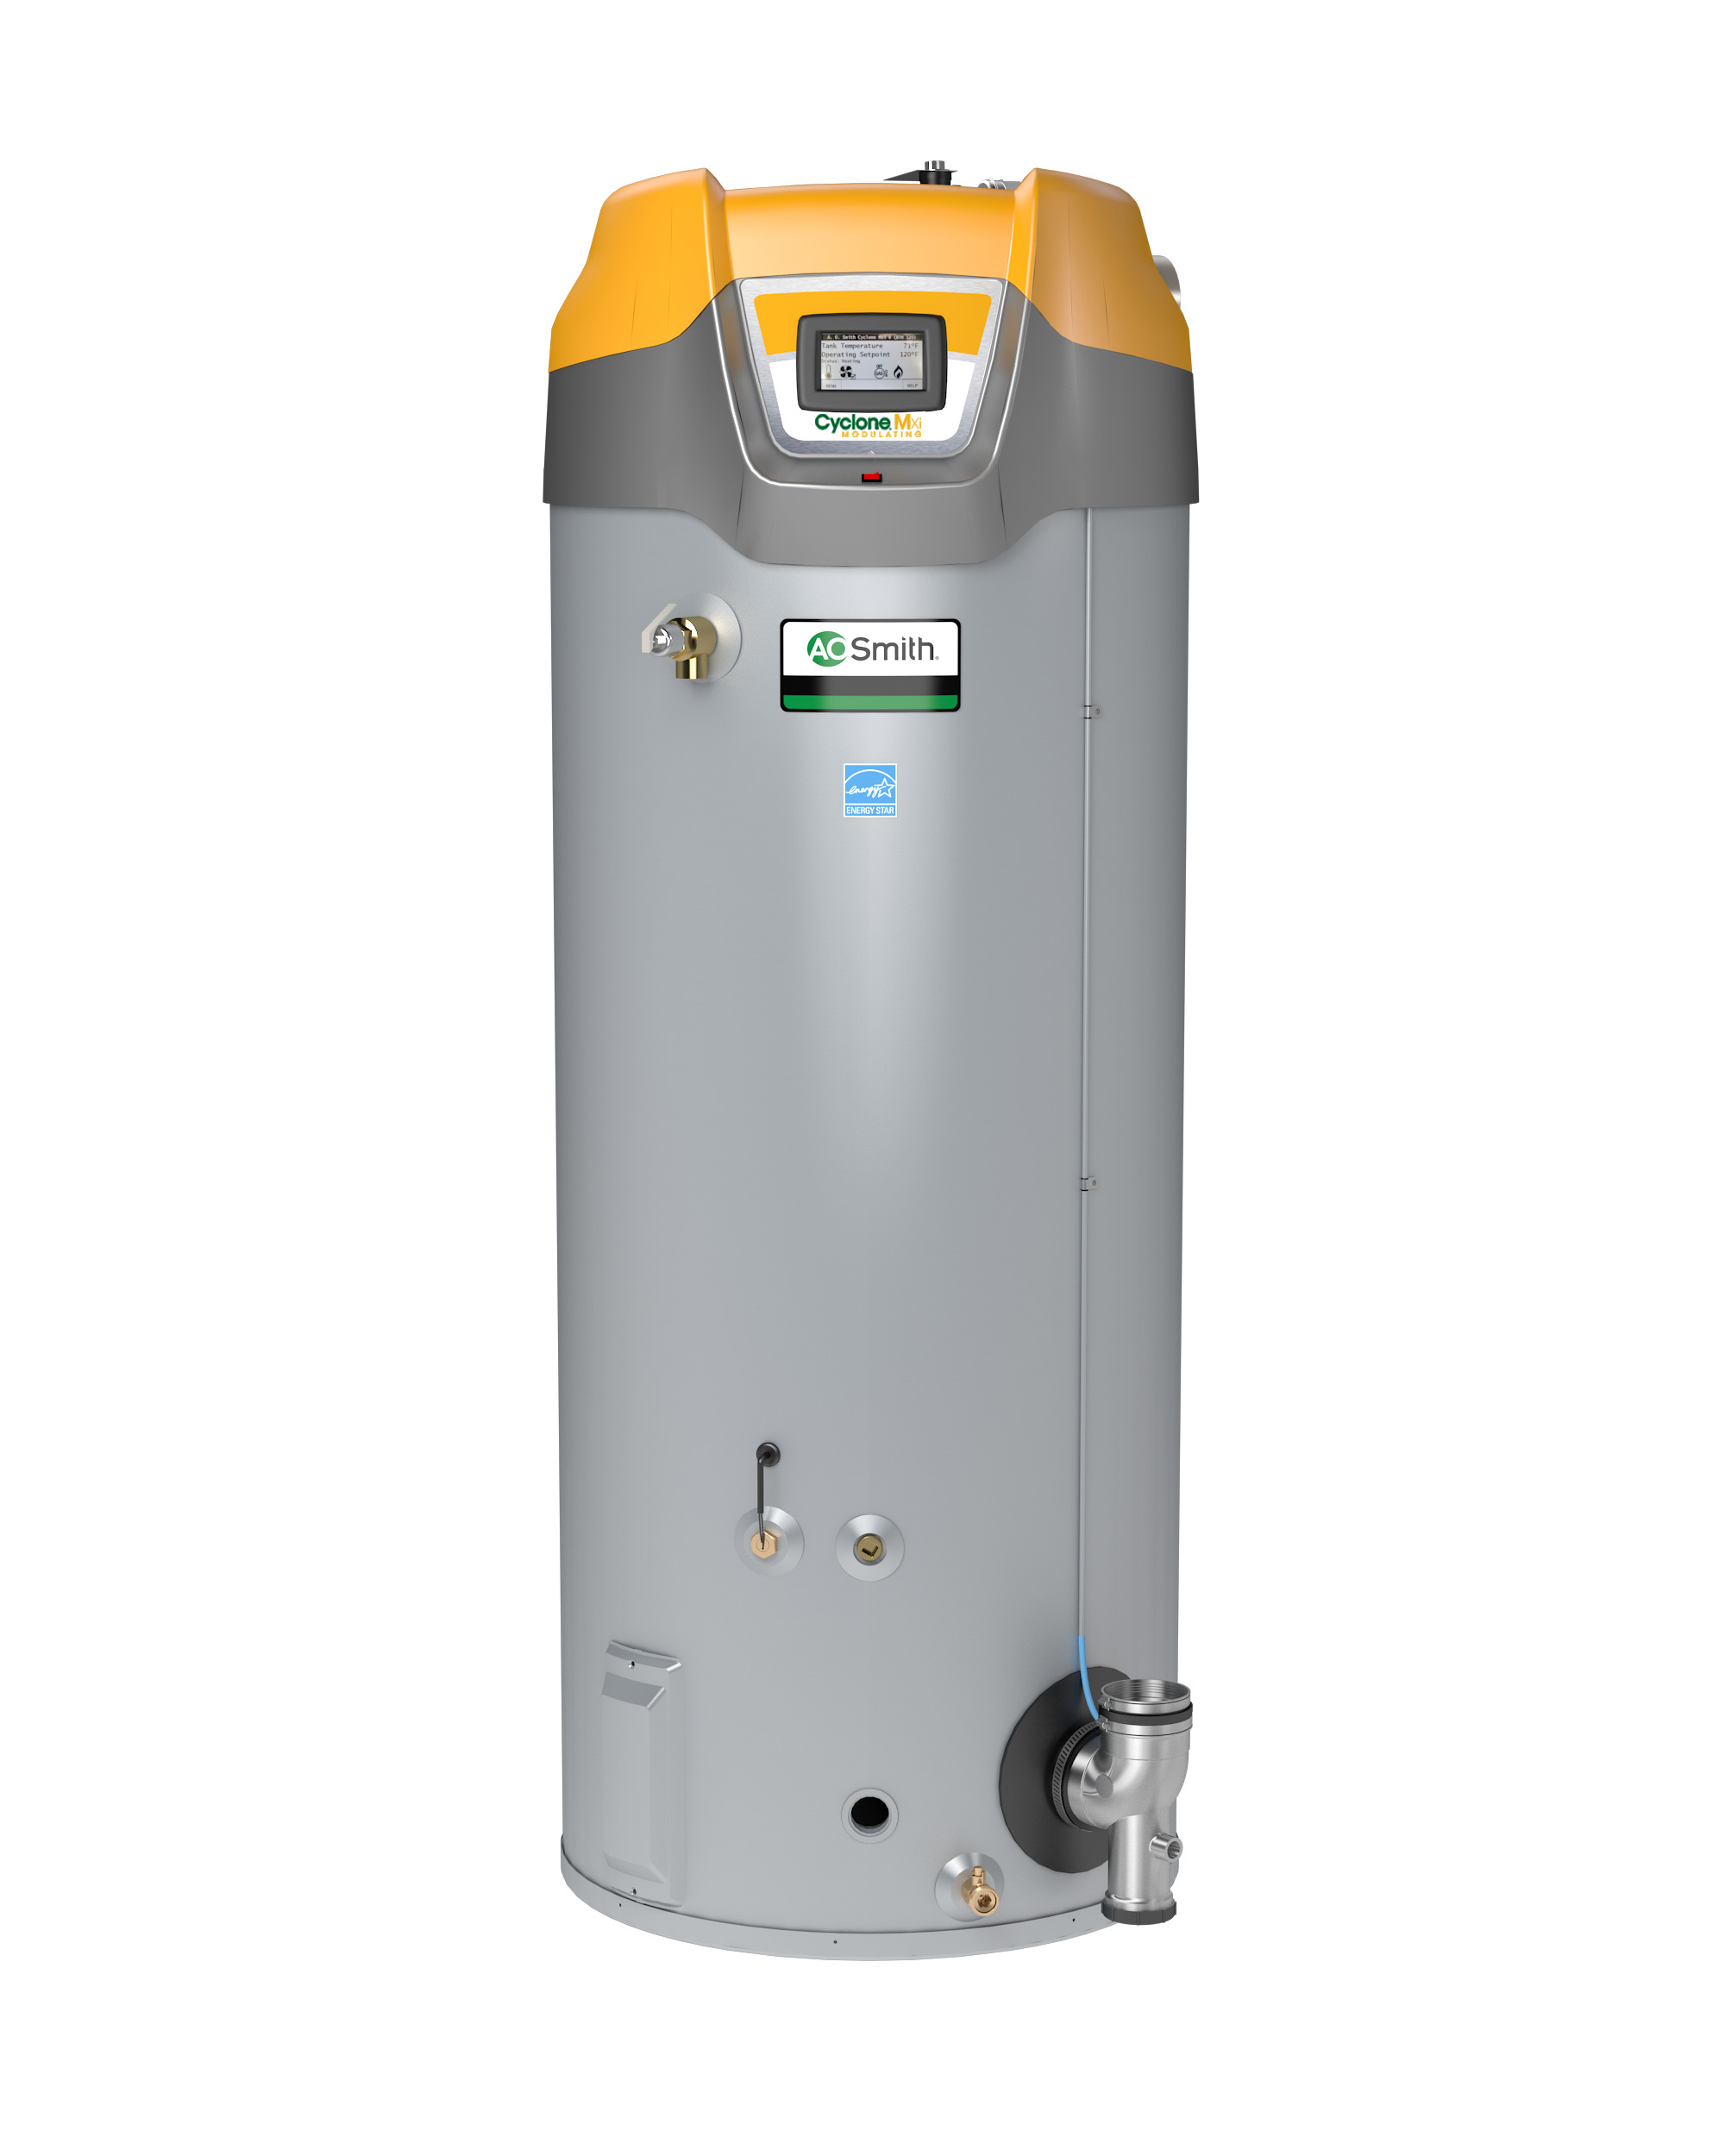 AO Smith BTH-120: 60 GALLON, 120,000 BTU, Cyclone Mxi, Commercial gas water heater, 3inch Vent, Up To 95% Thermal Efficiency, Natural Gas